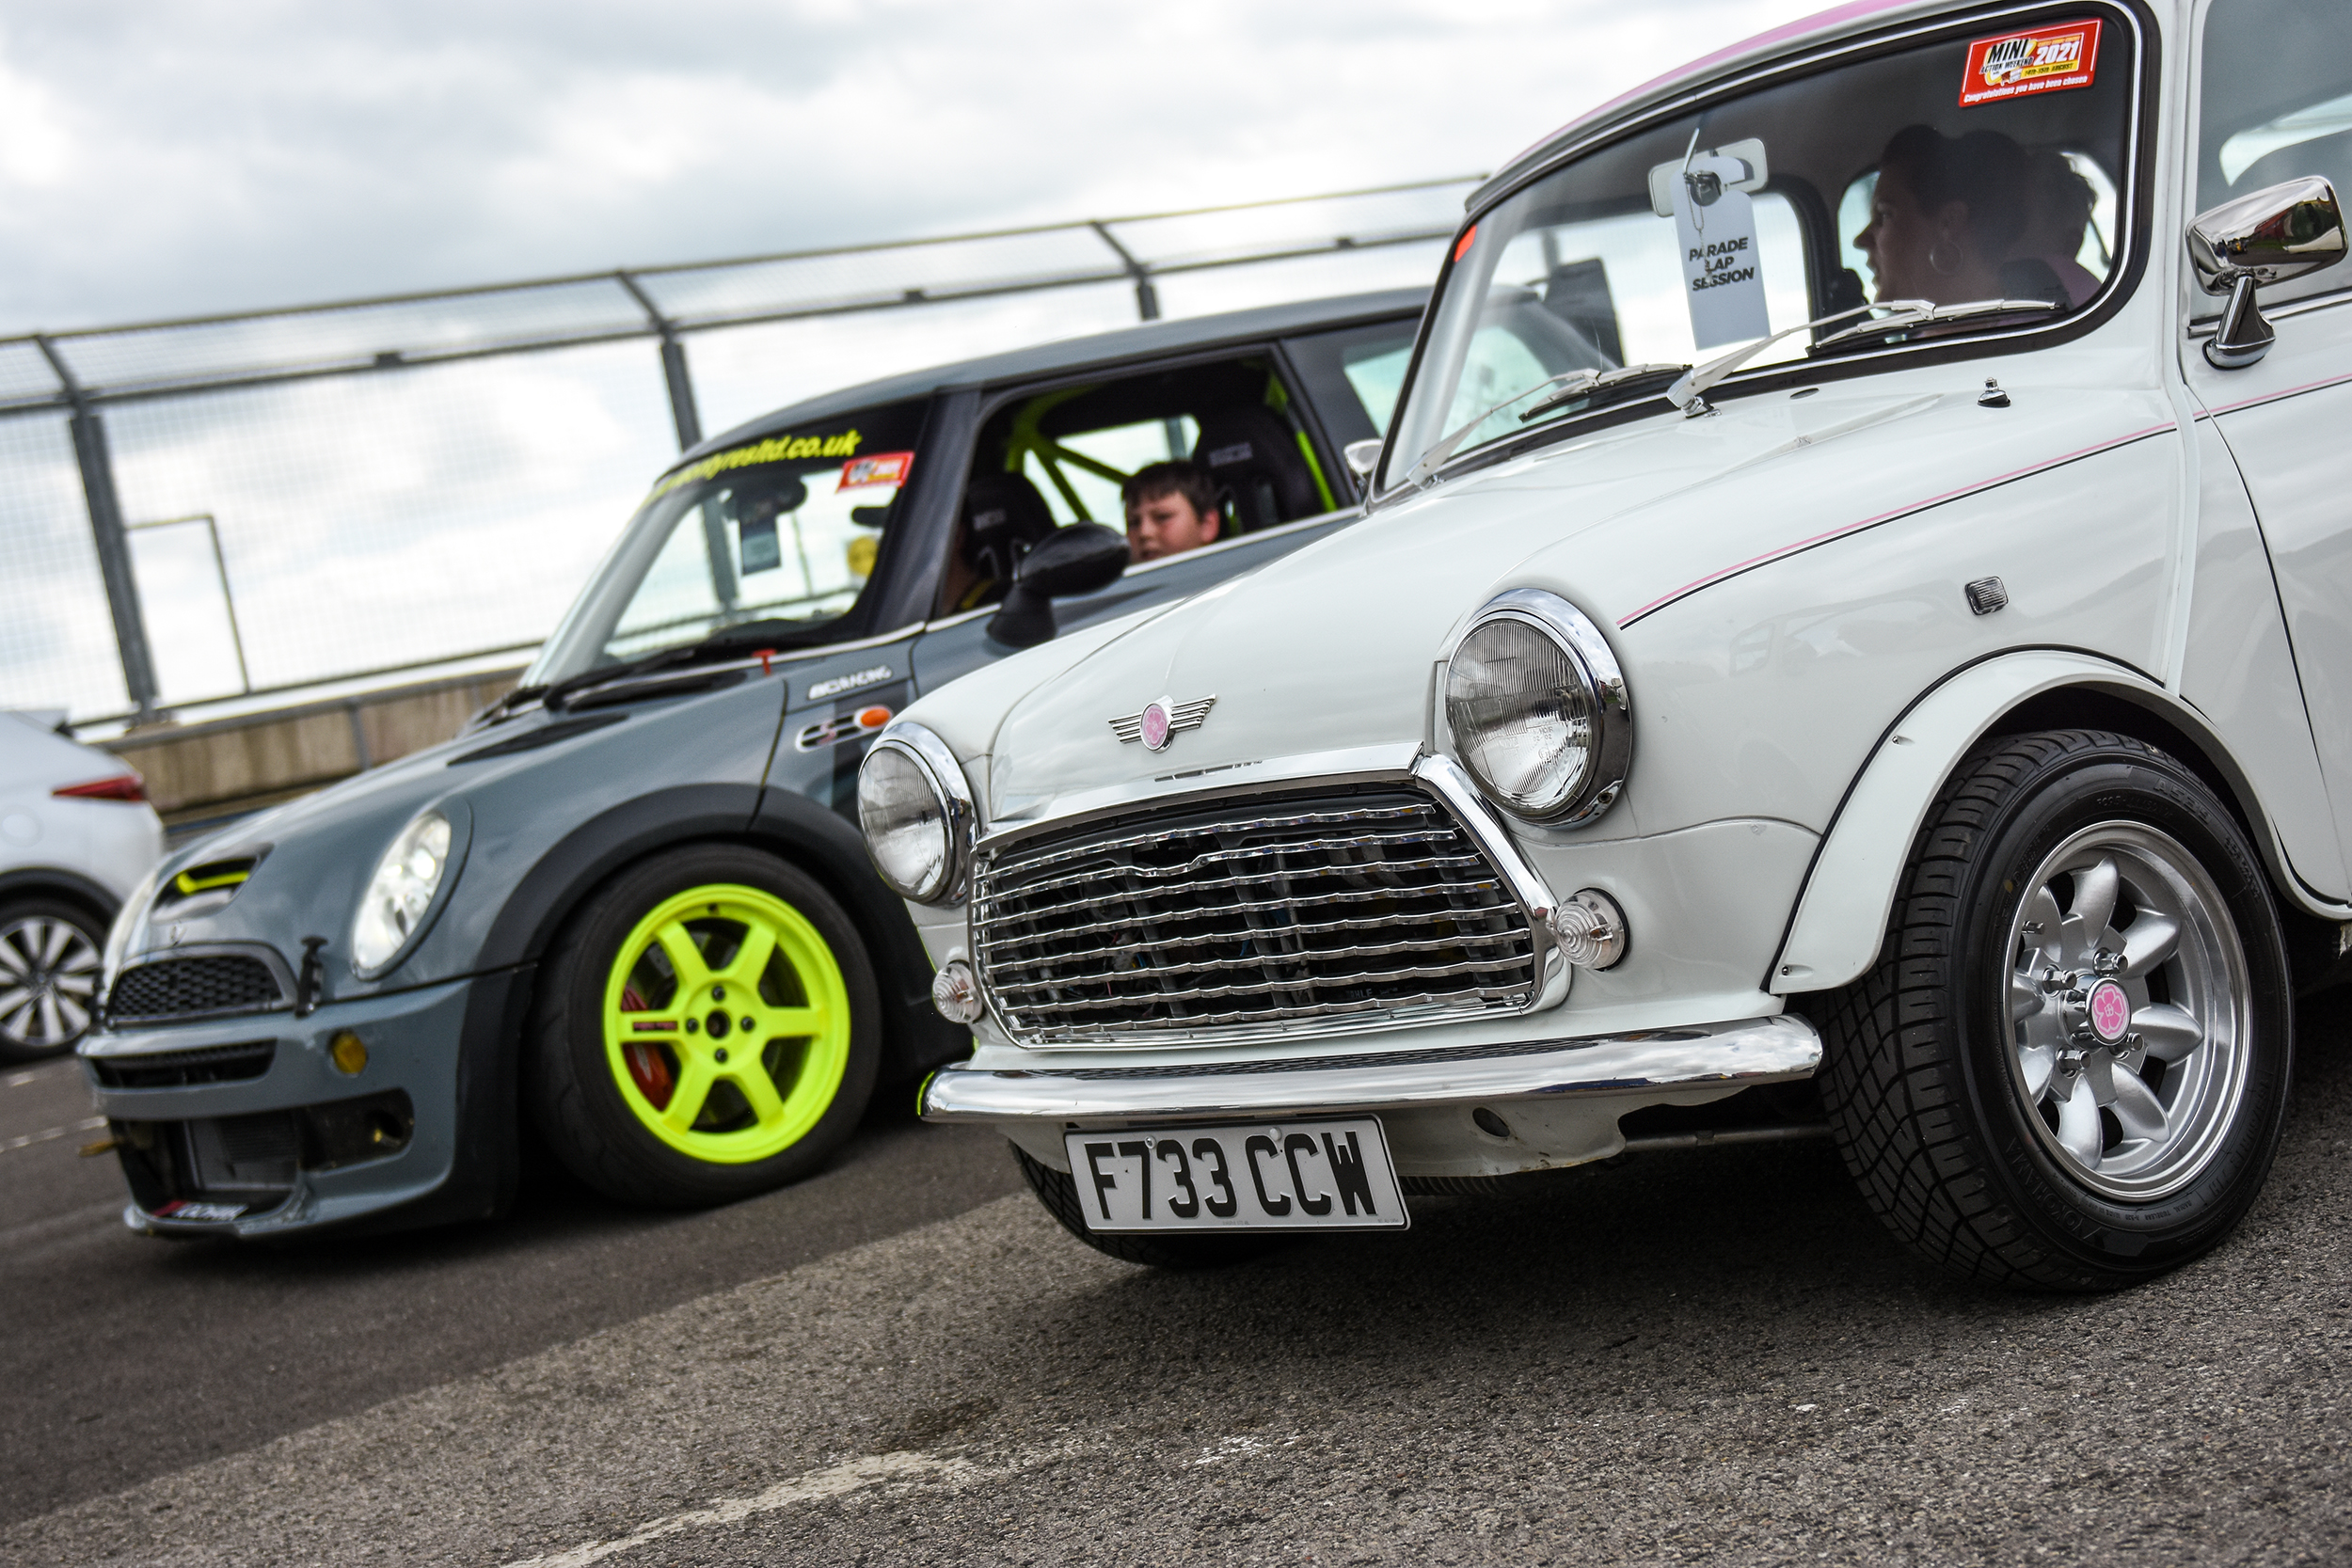 MINI ACTION DAY 2021 – SMALL CARS, BIG ACTION!